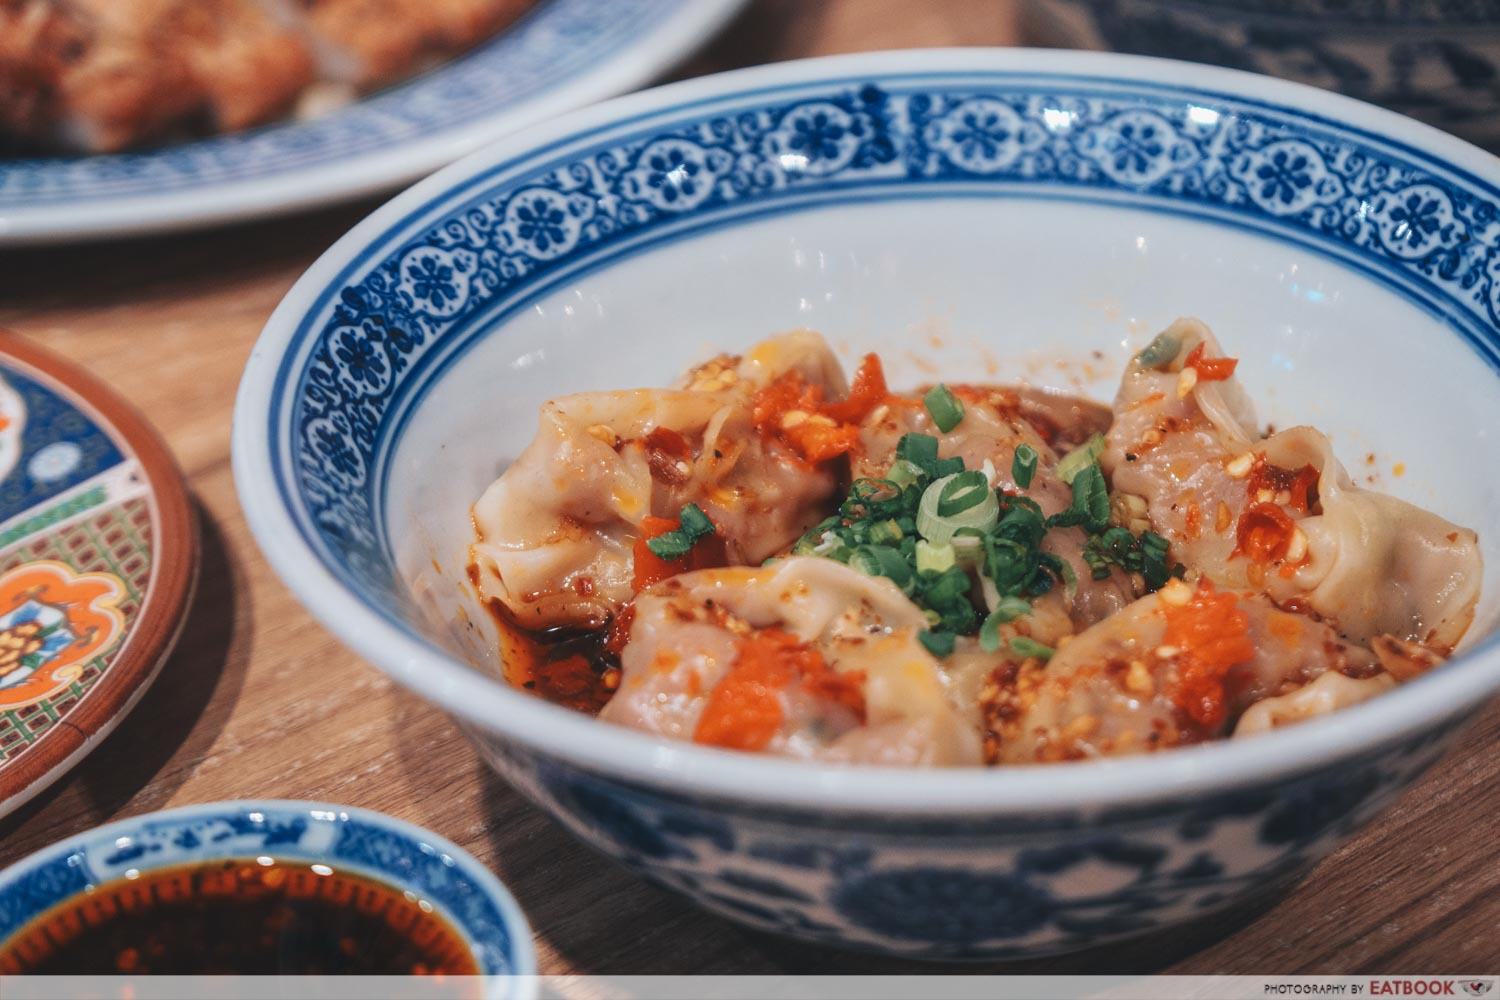 Feng Food shrimp and pork wontons with hot and spicy sauce intro